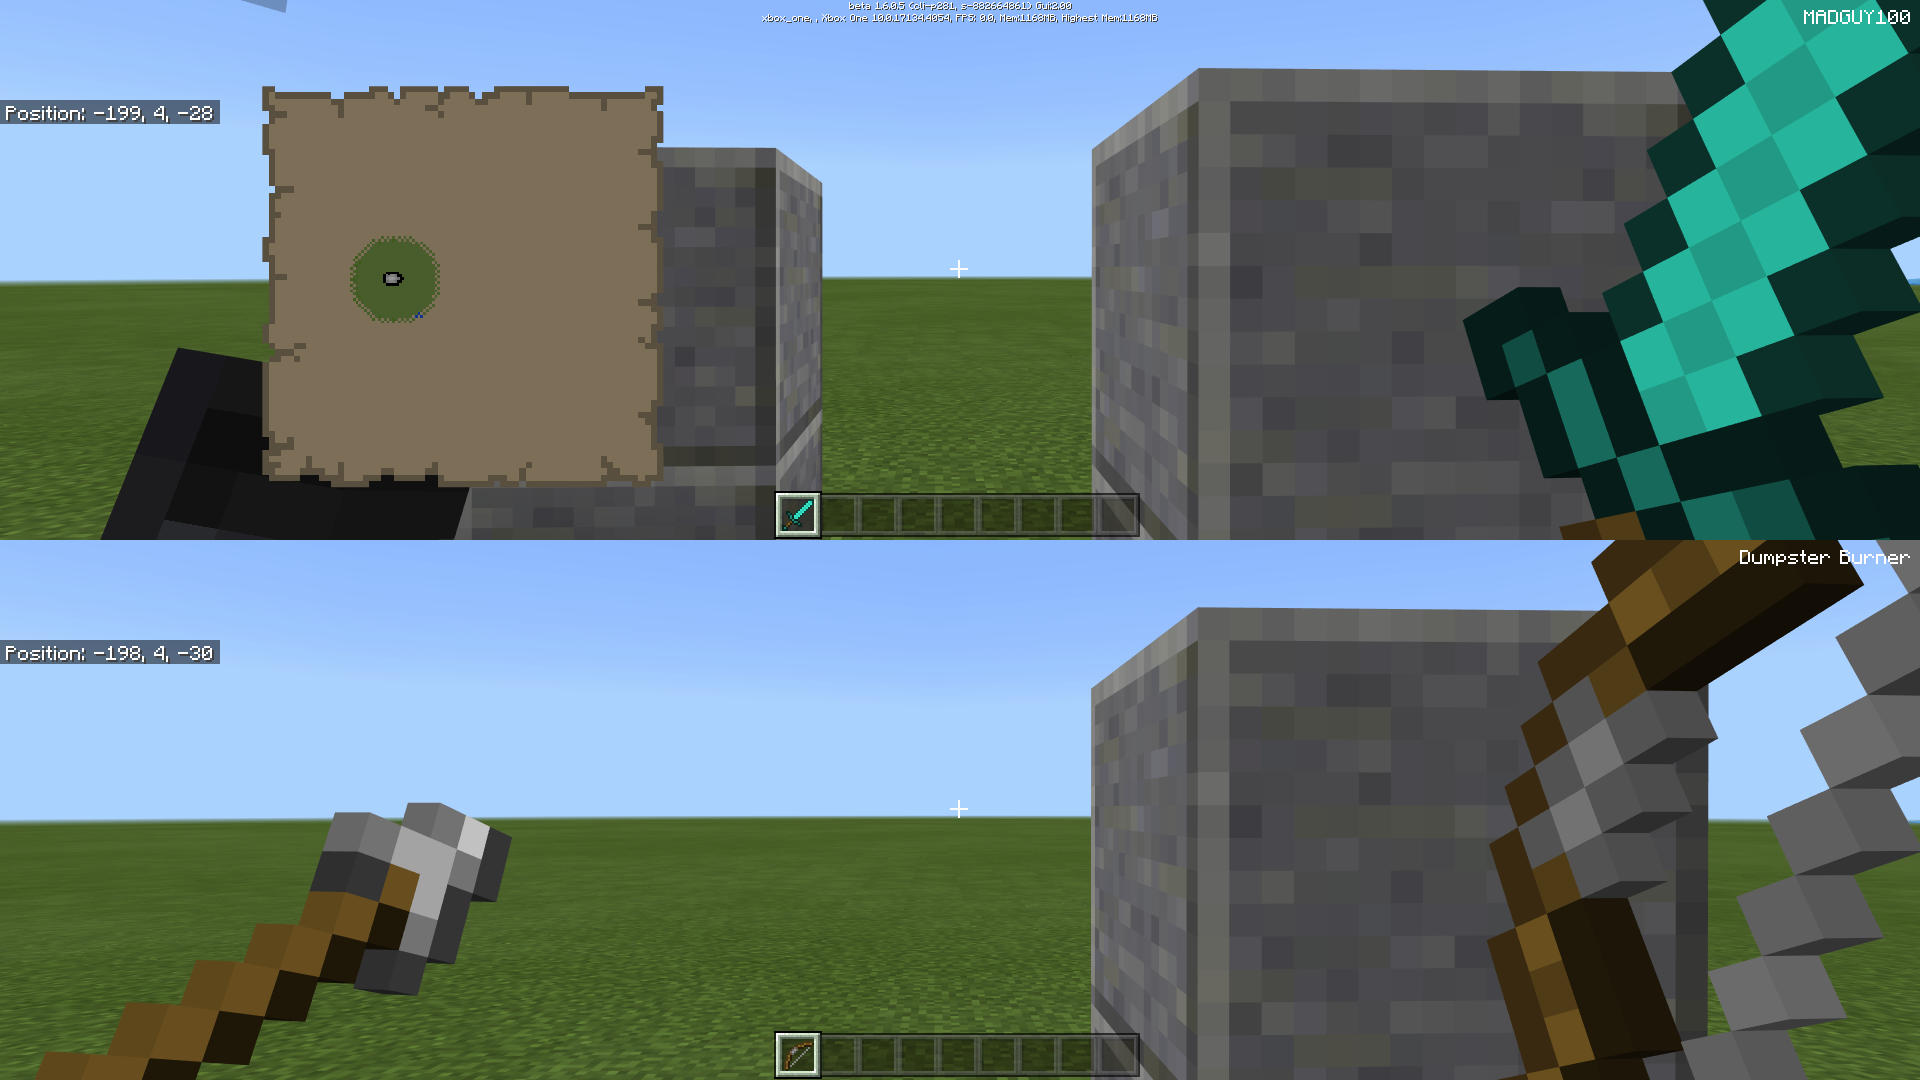 MCPE-25775] Items on hand too big in 2-players split screen